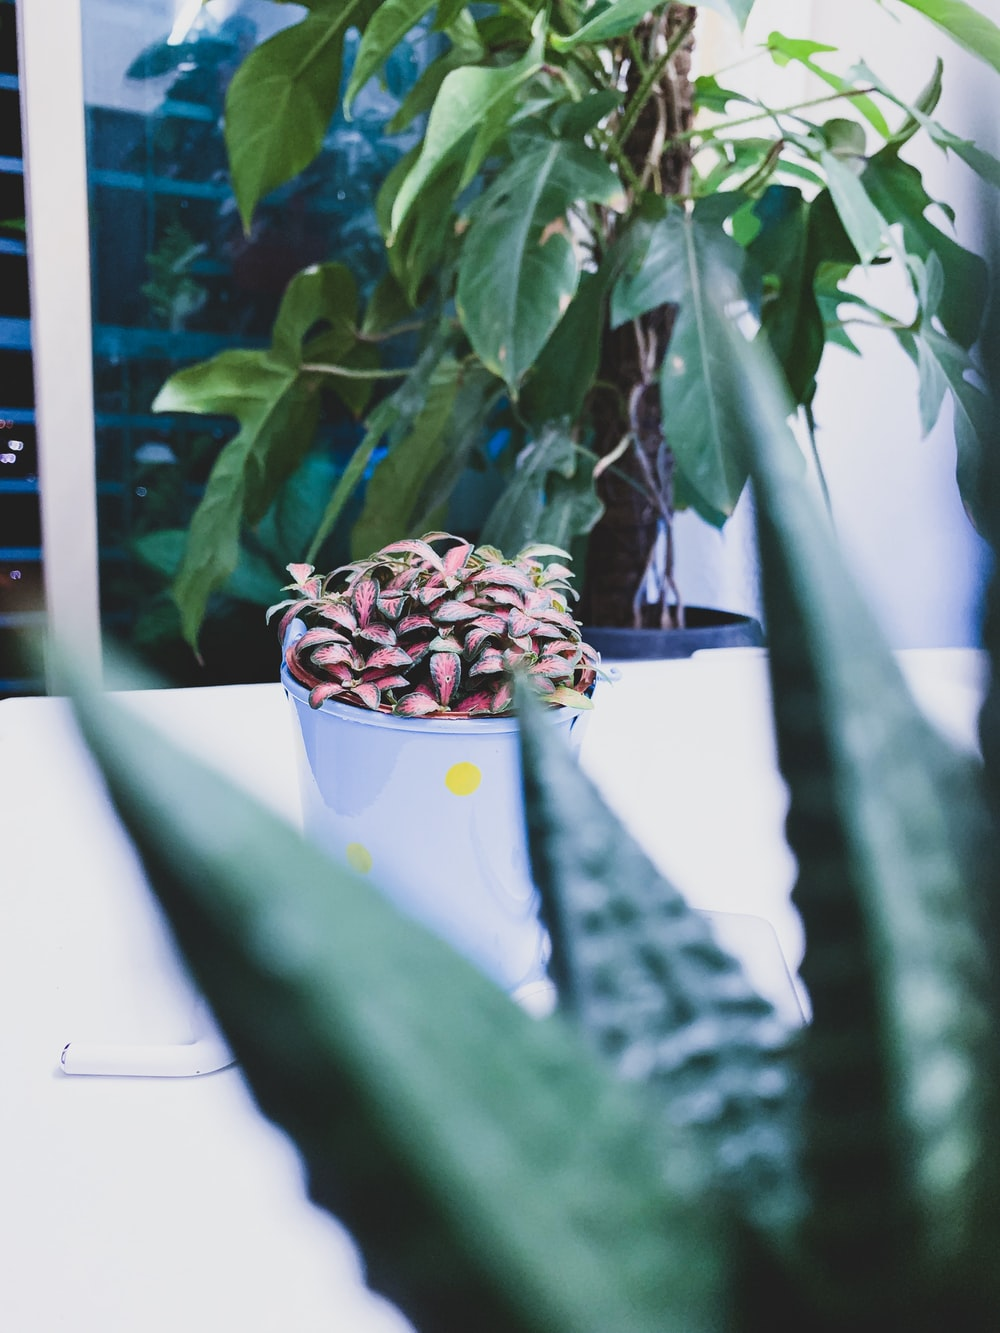 purple-leafed plants and round white plant pot